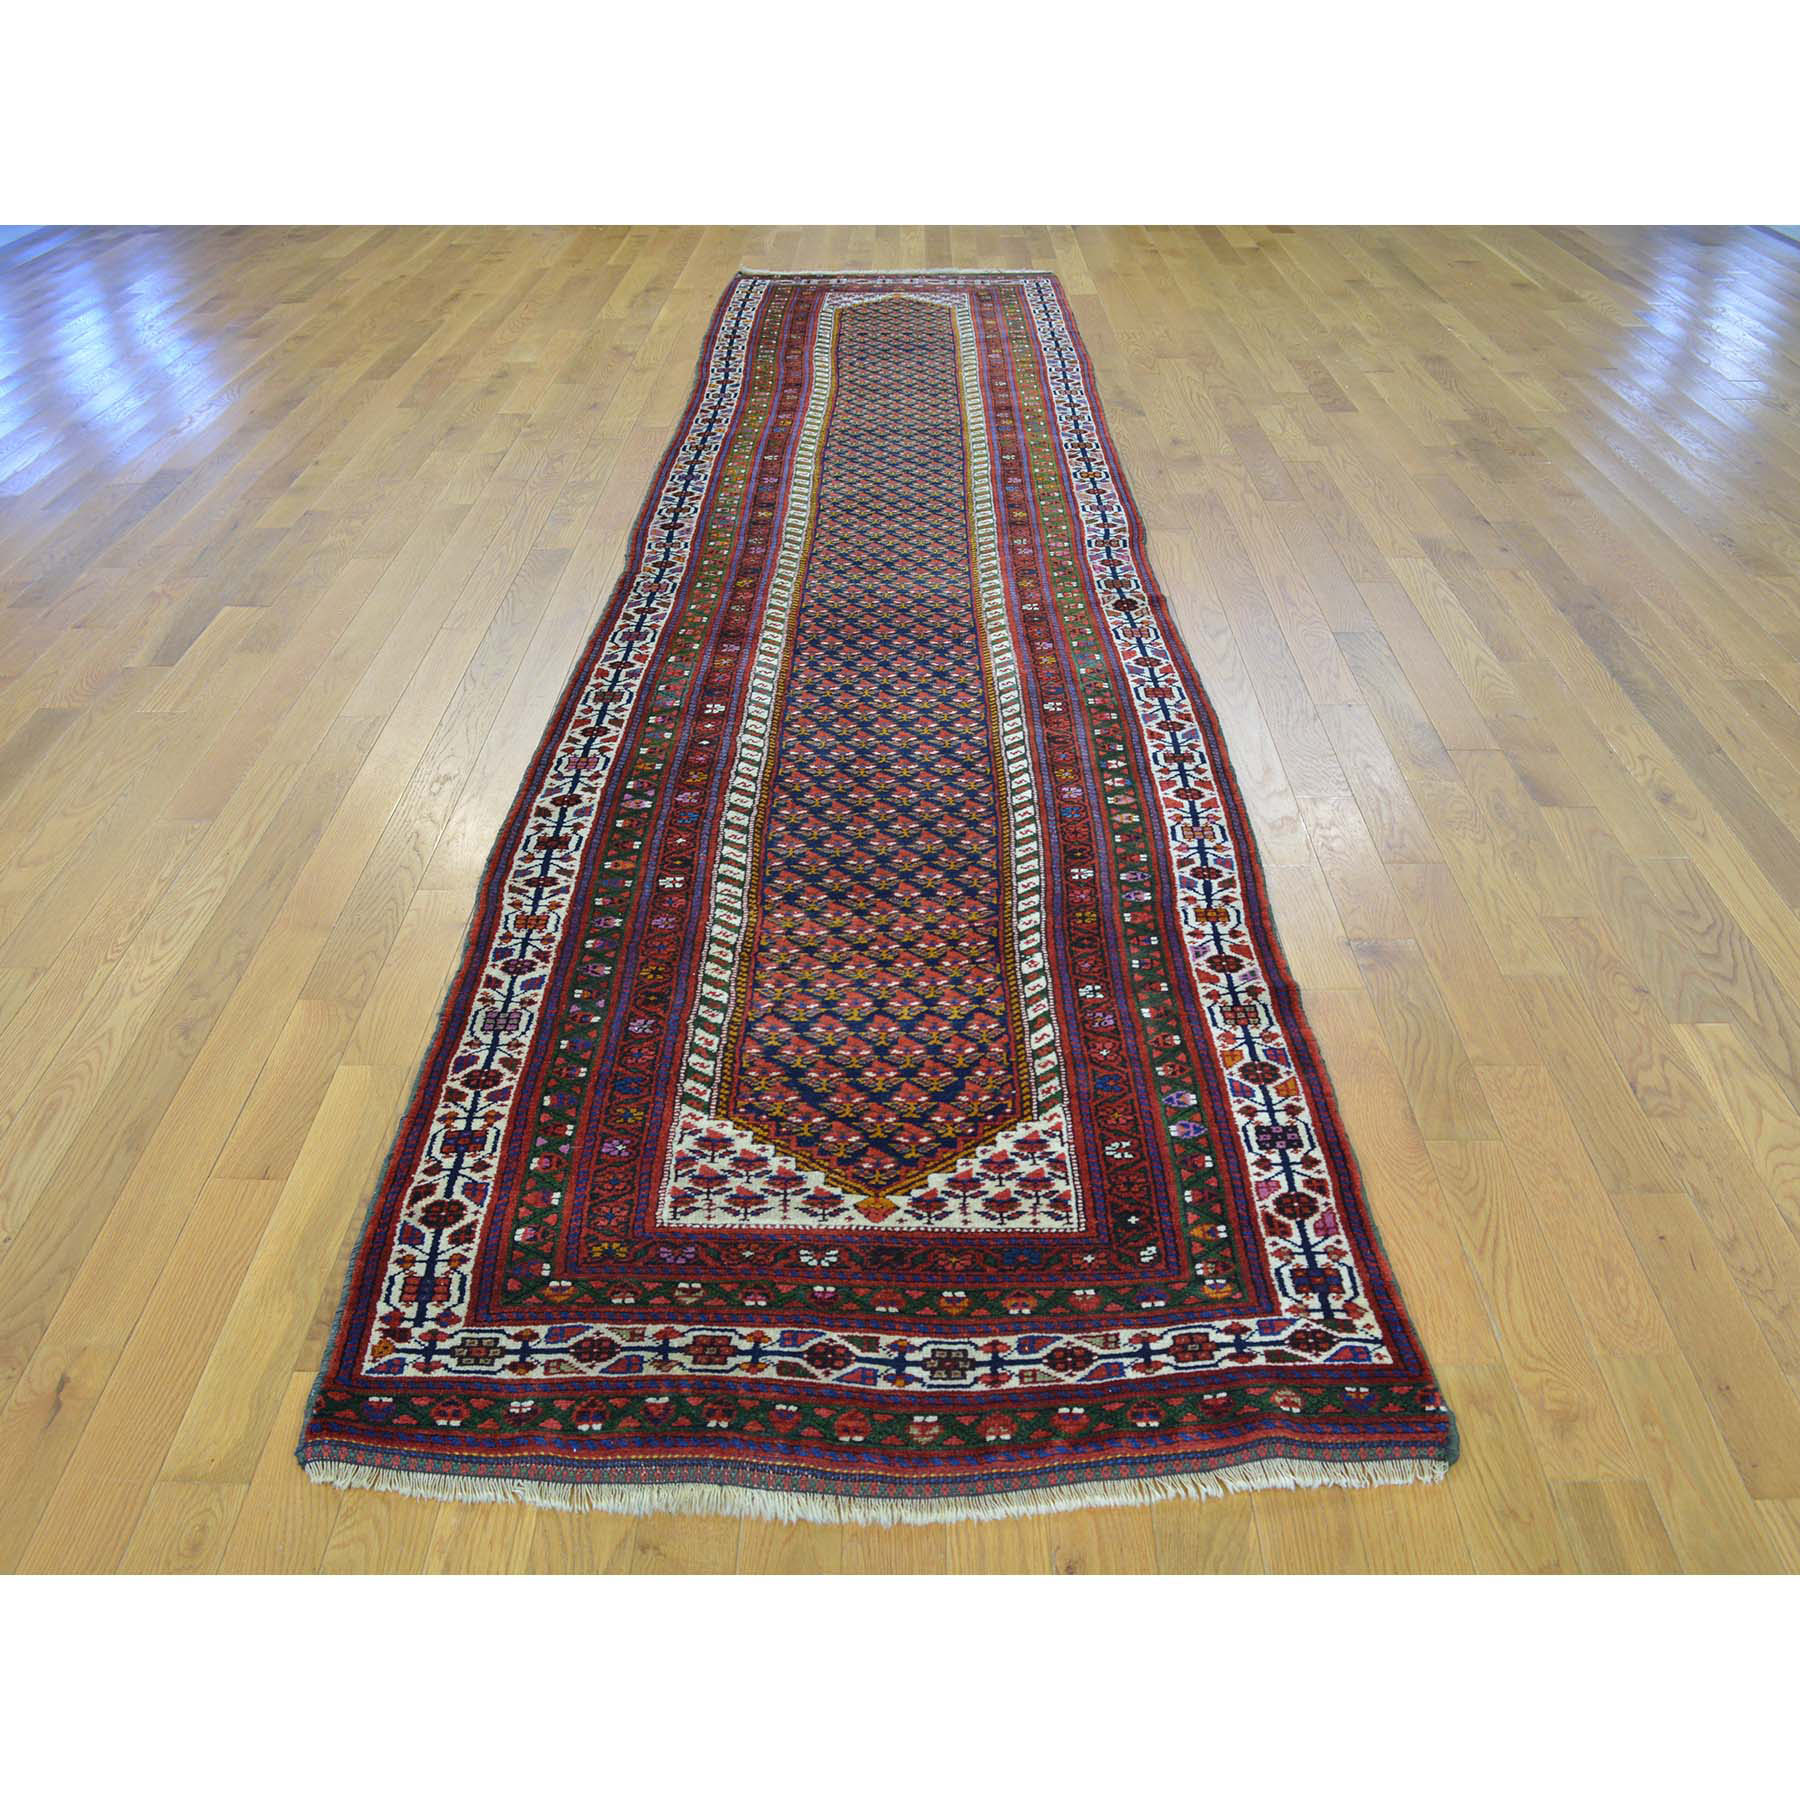 3-2 x13-10  Antique Persian Northwest Boteh Design Runner Handmade Rug